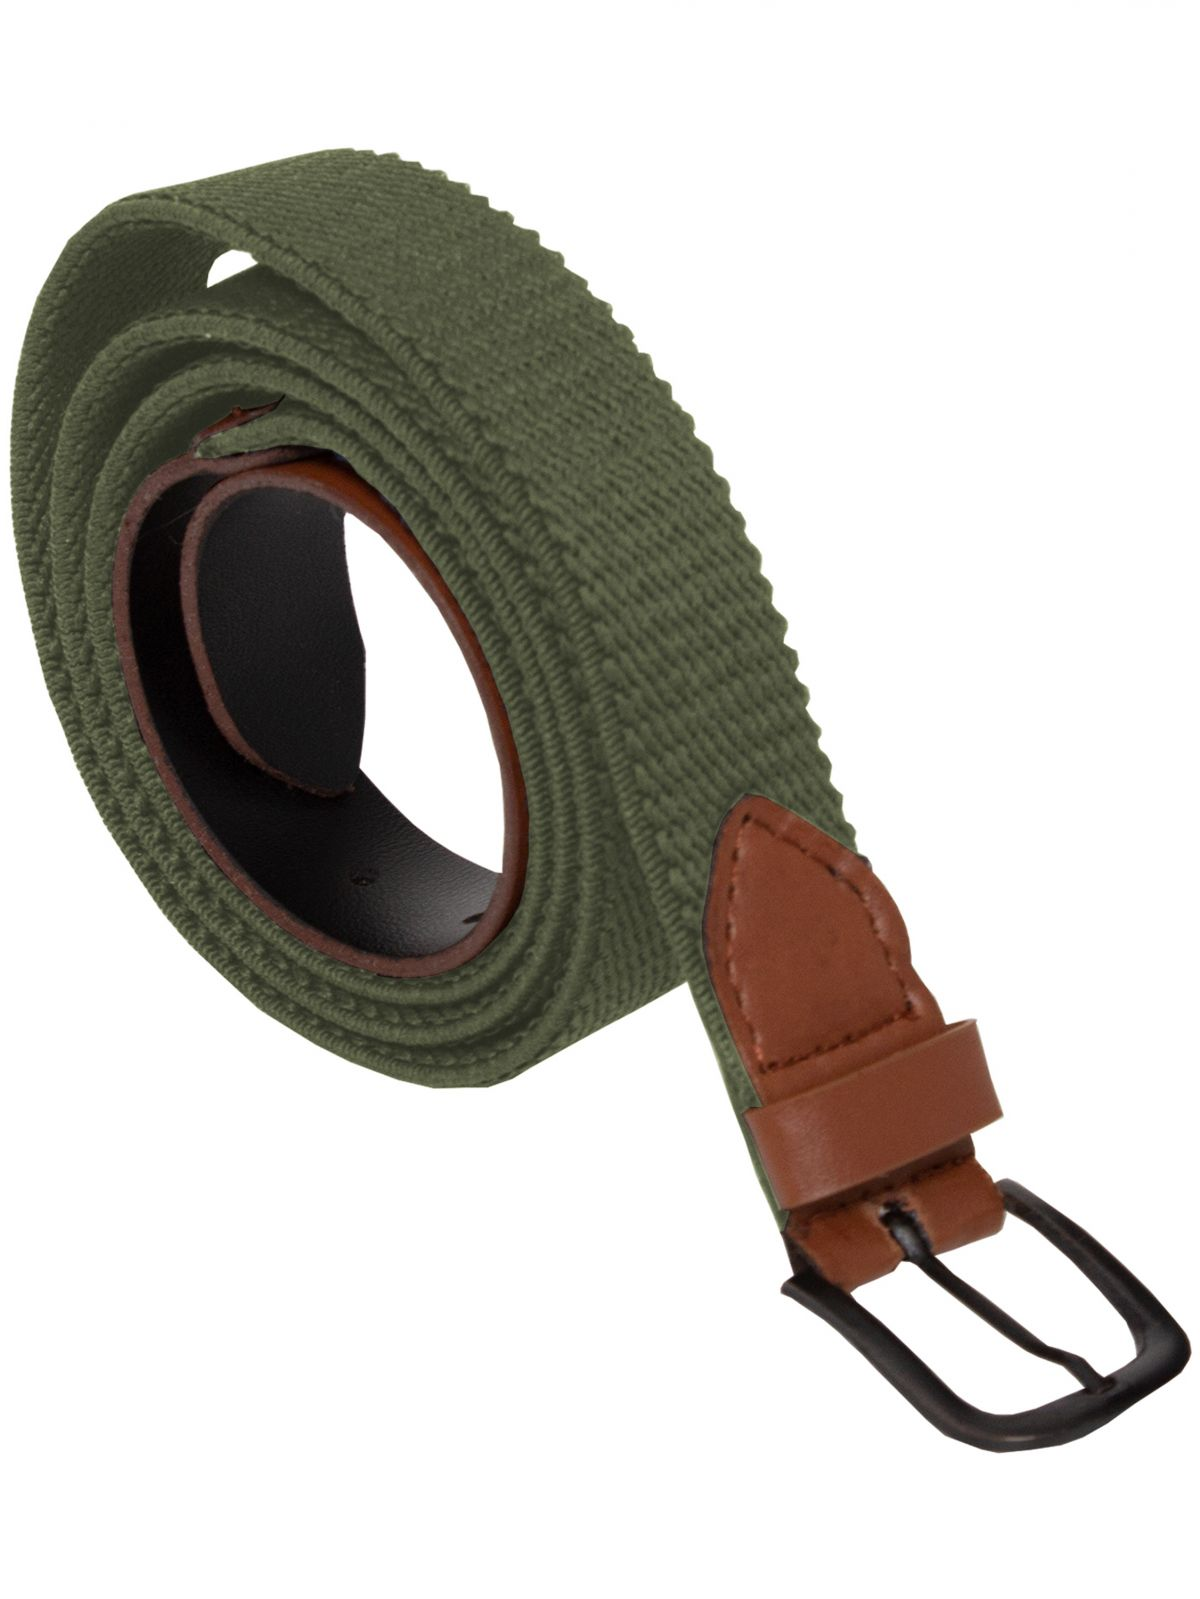 Accessories | ENZO Mens Canvas Elasticated Belt Stretch Womens Unisex Adjustable Buckle | Enzo Designer Menswear